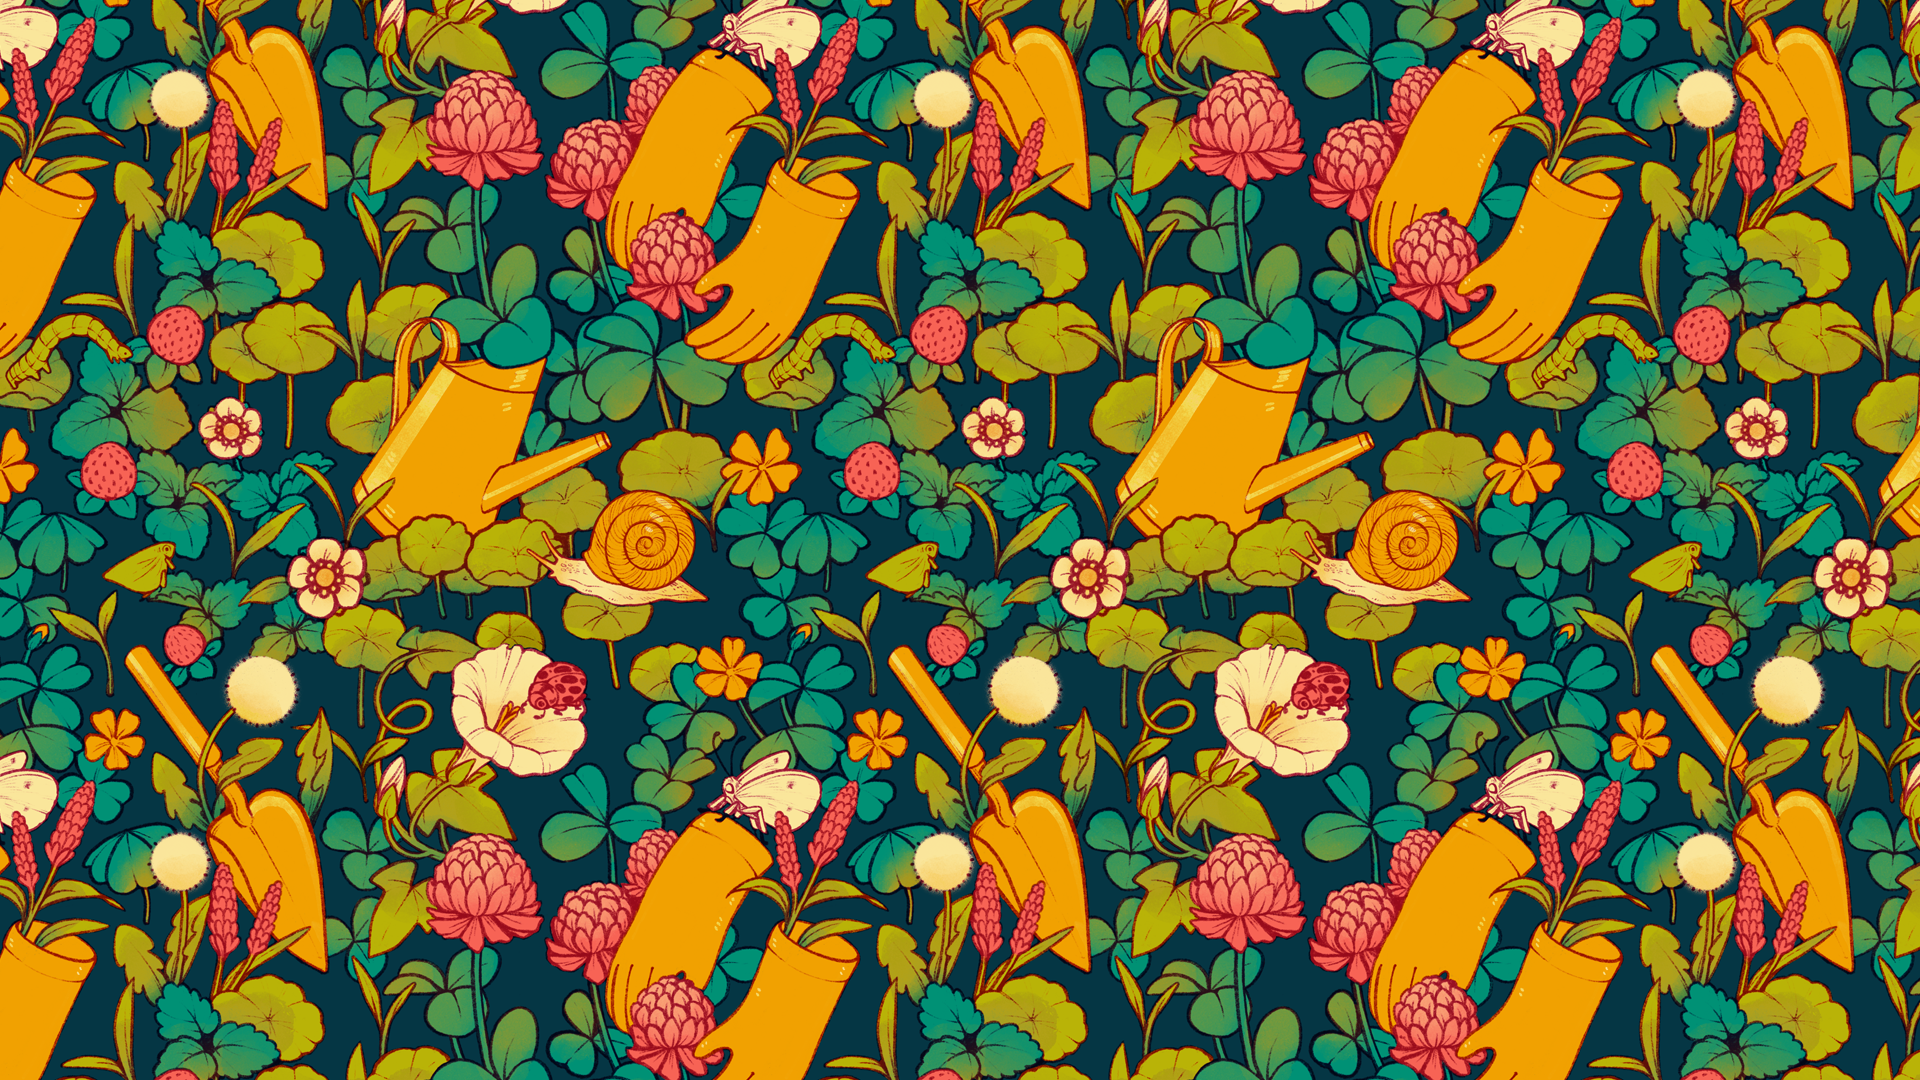 A pattern of garden tools, weeds, and so-called pests on a dark teal background. This pattern features a pair of gardening gloves, a trowel, and a watering can placed amidst a crowded scene of dandelions, wood sorrel, mock strawberries, hedge bindweed and